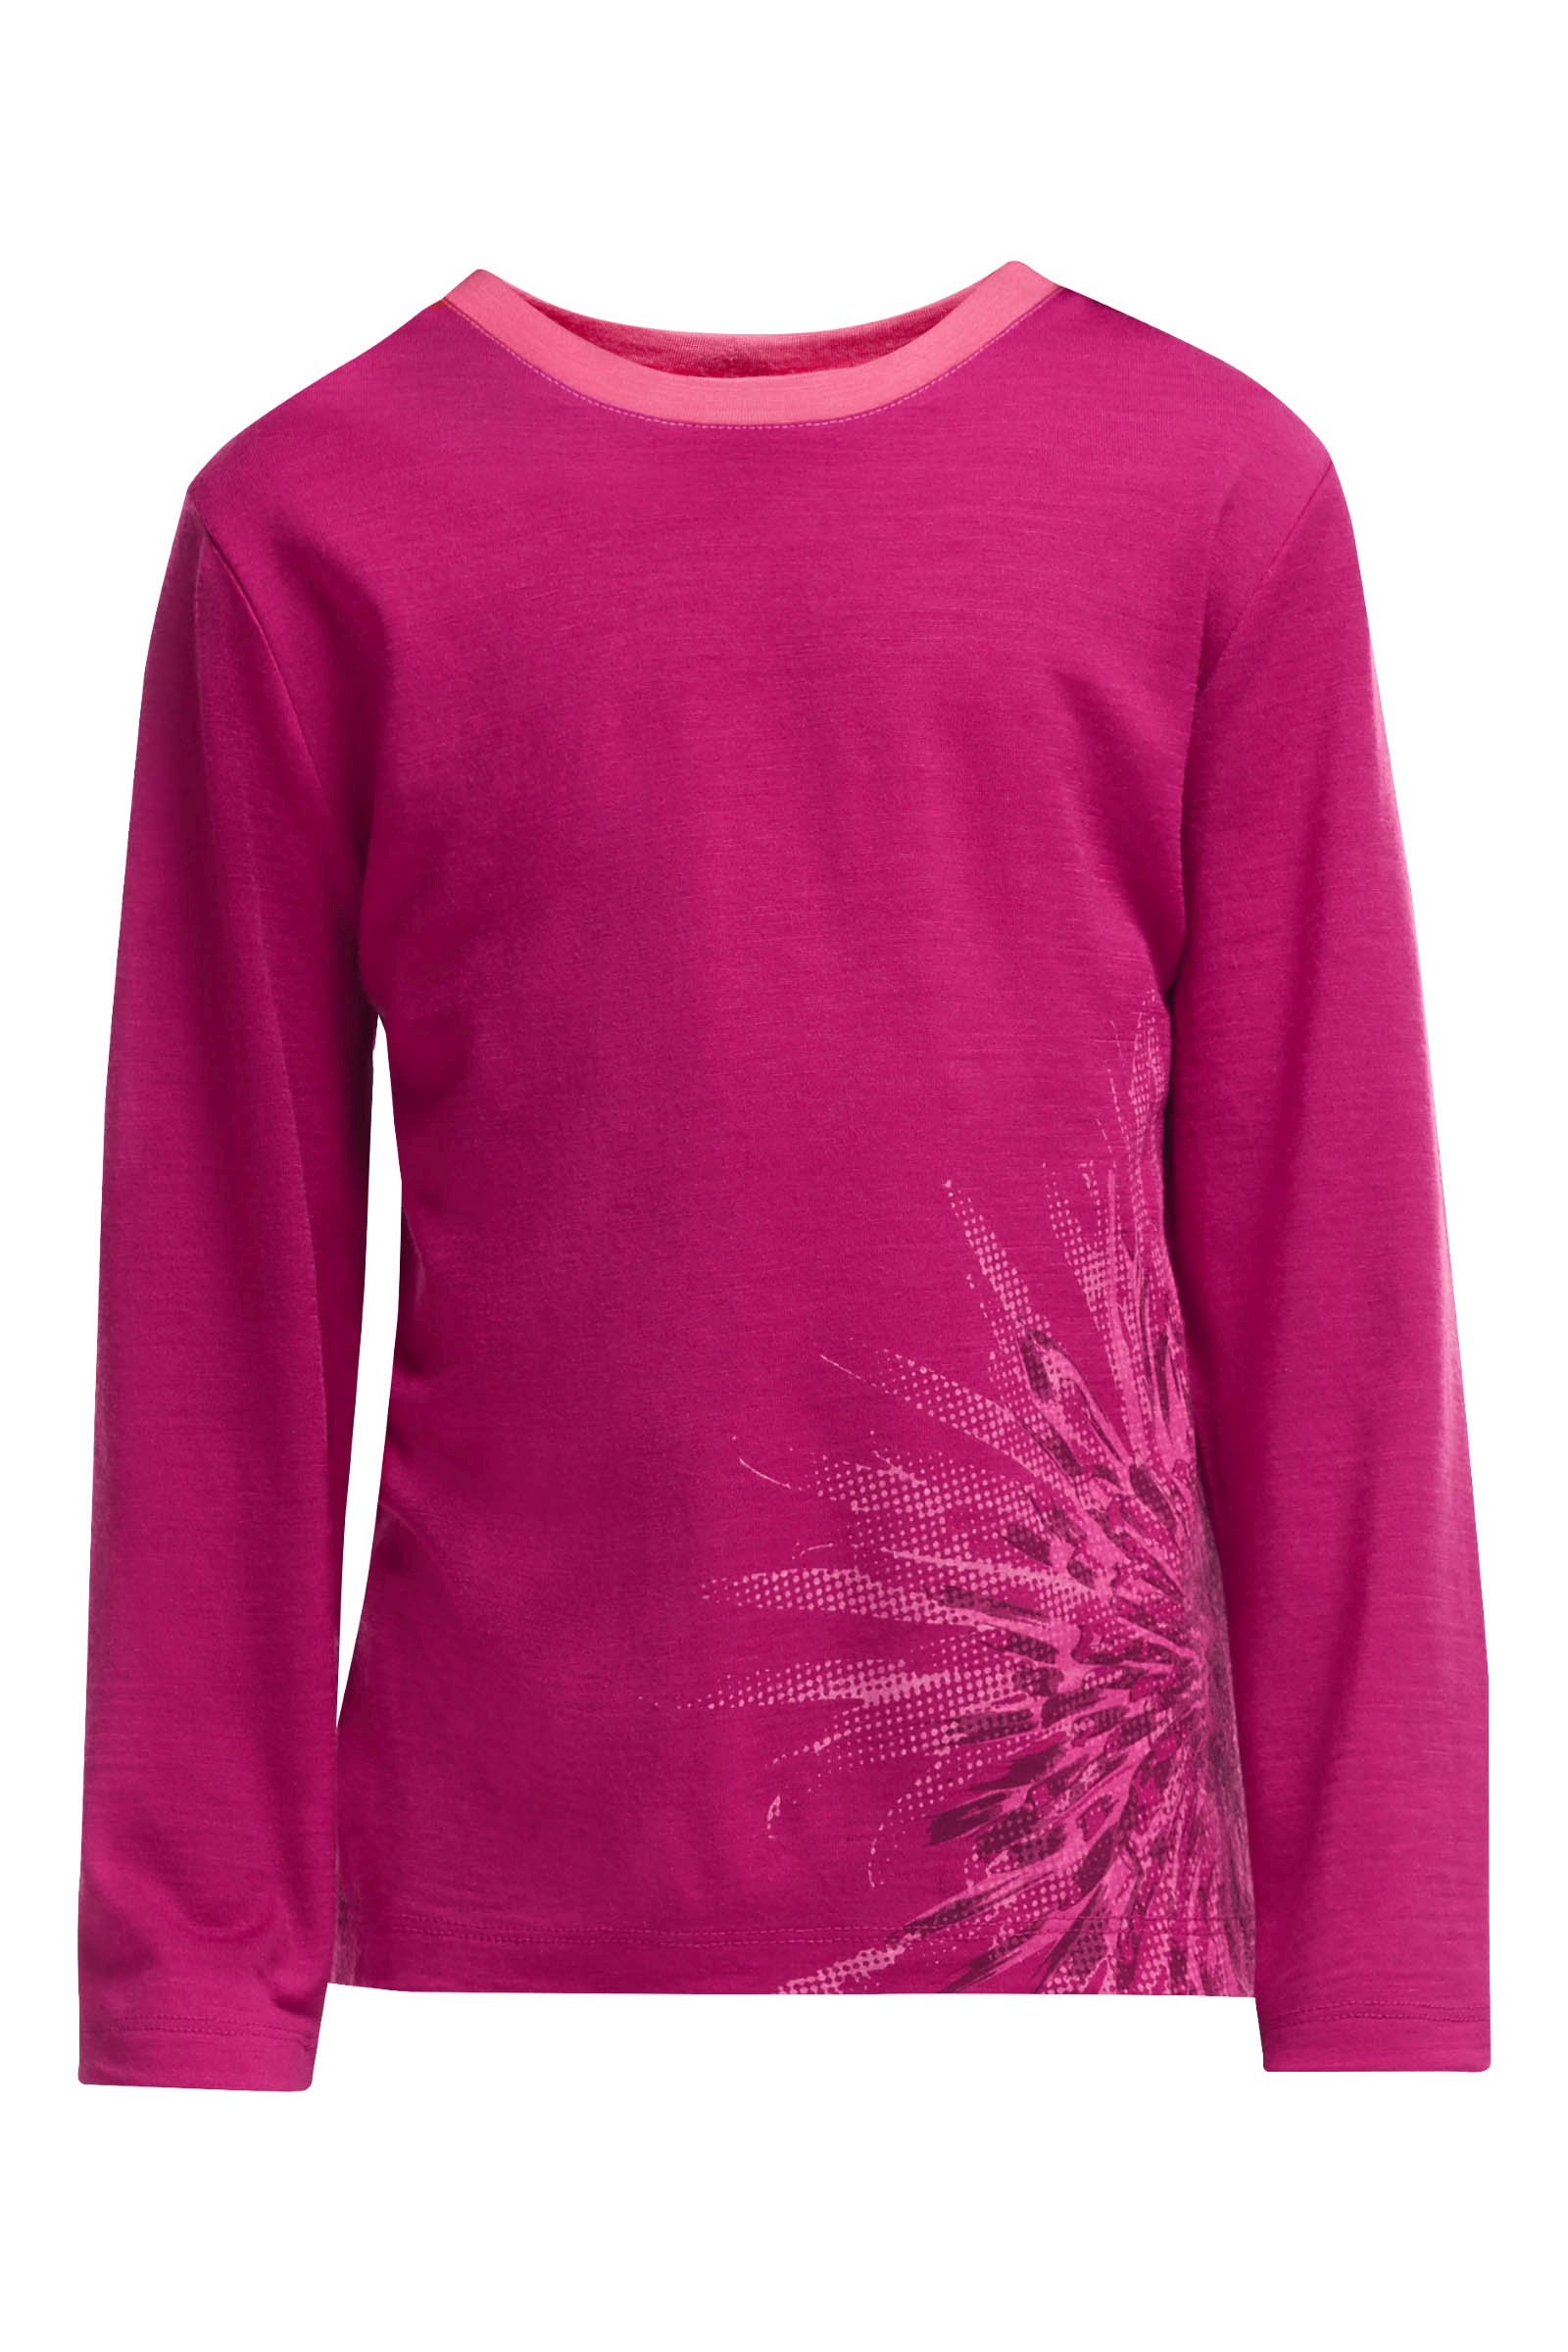 Icebreaker Kids Tech LS Crewe Chrysanthenum Raspberry/Shocking-30